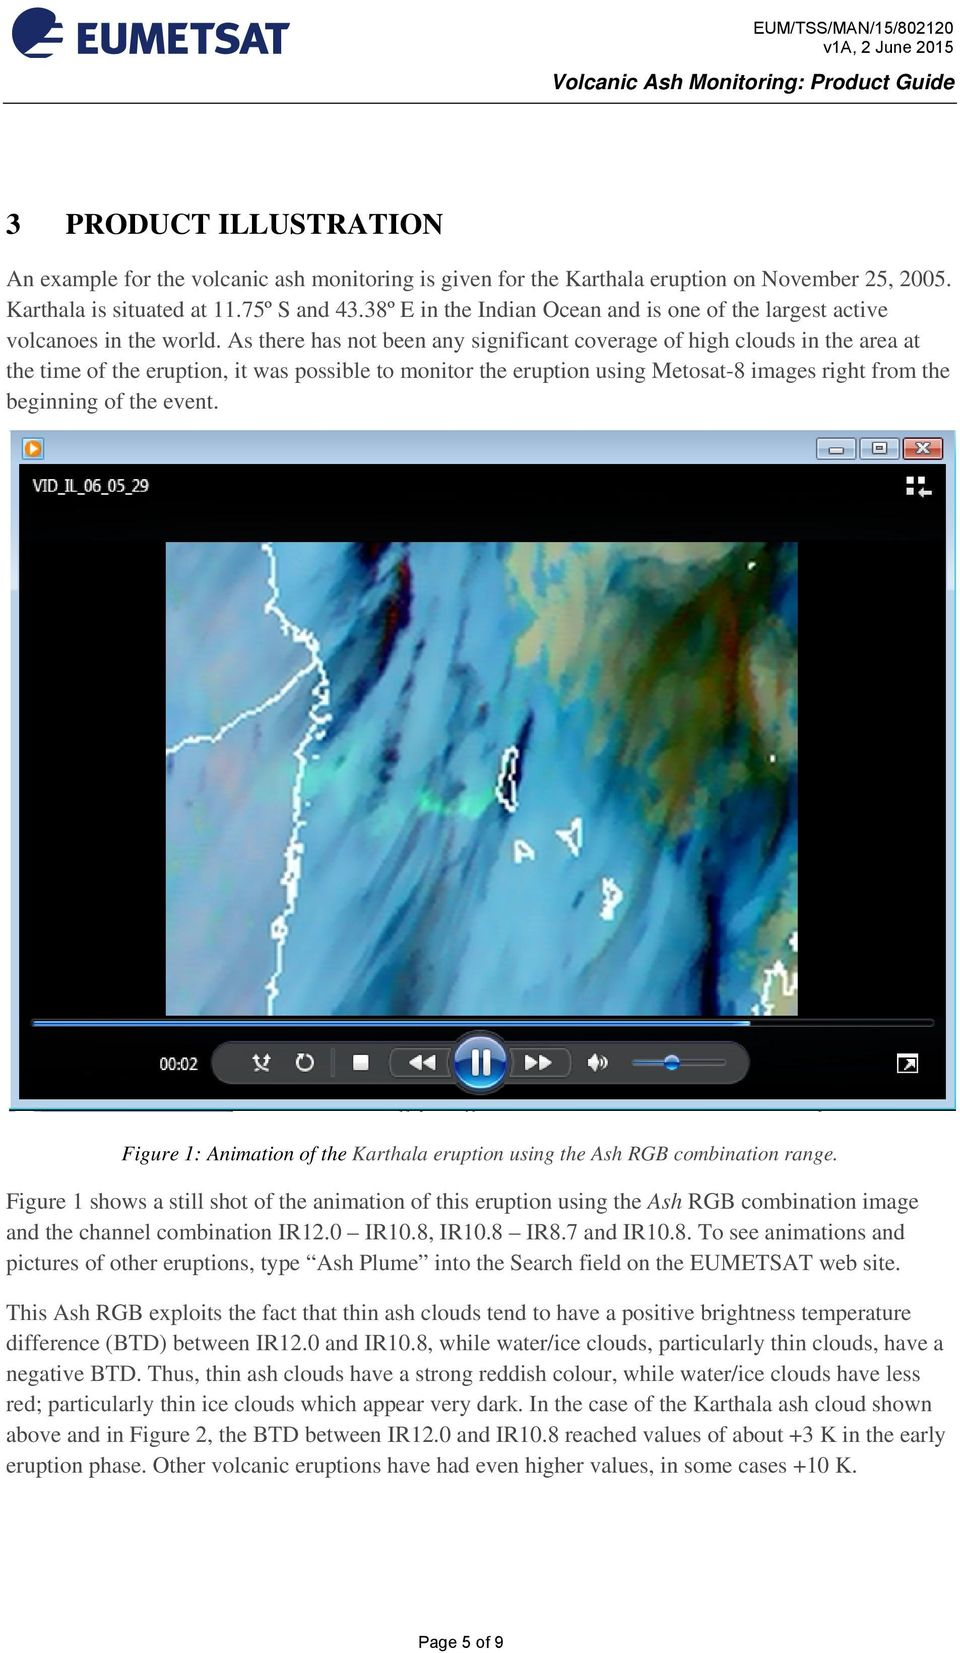 As there has not been any significant coverage of high clouds in the area at the time of the eruption, it was possible to monitor the eruption using Metosat-8 images right from the beginning of the